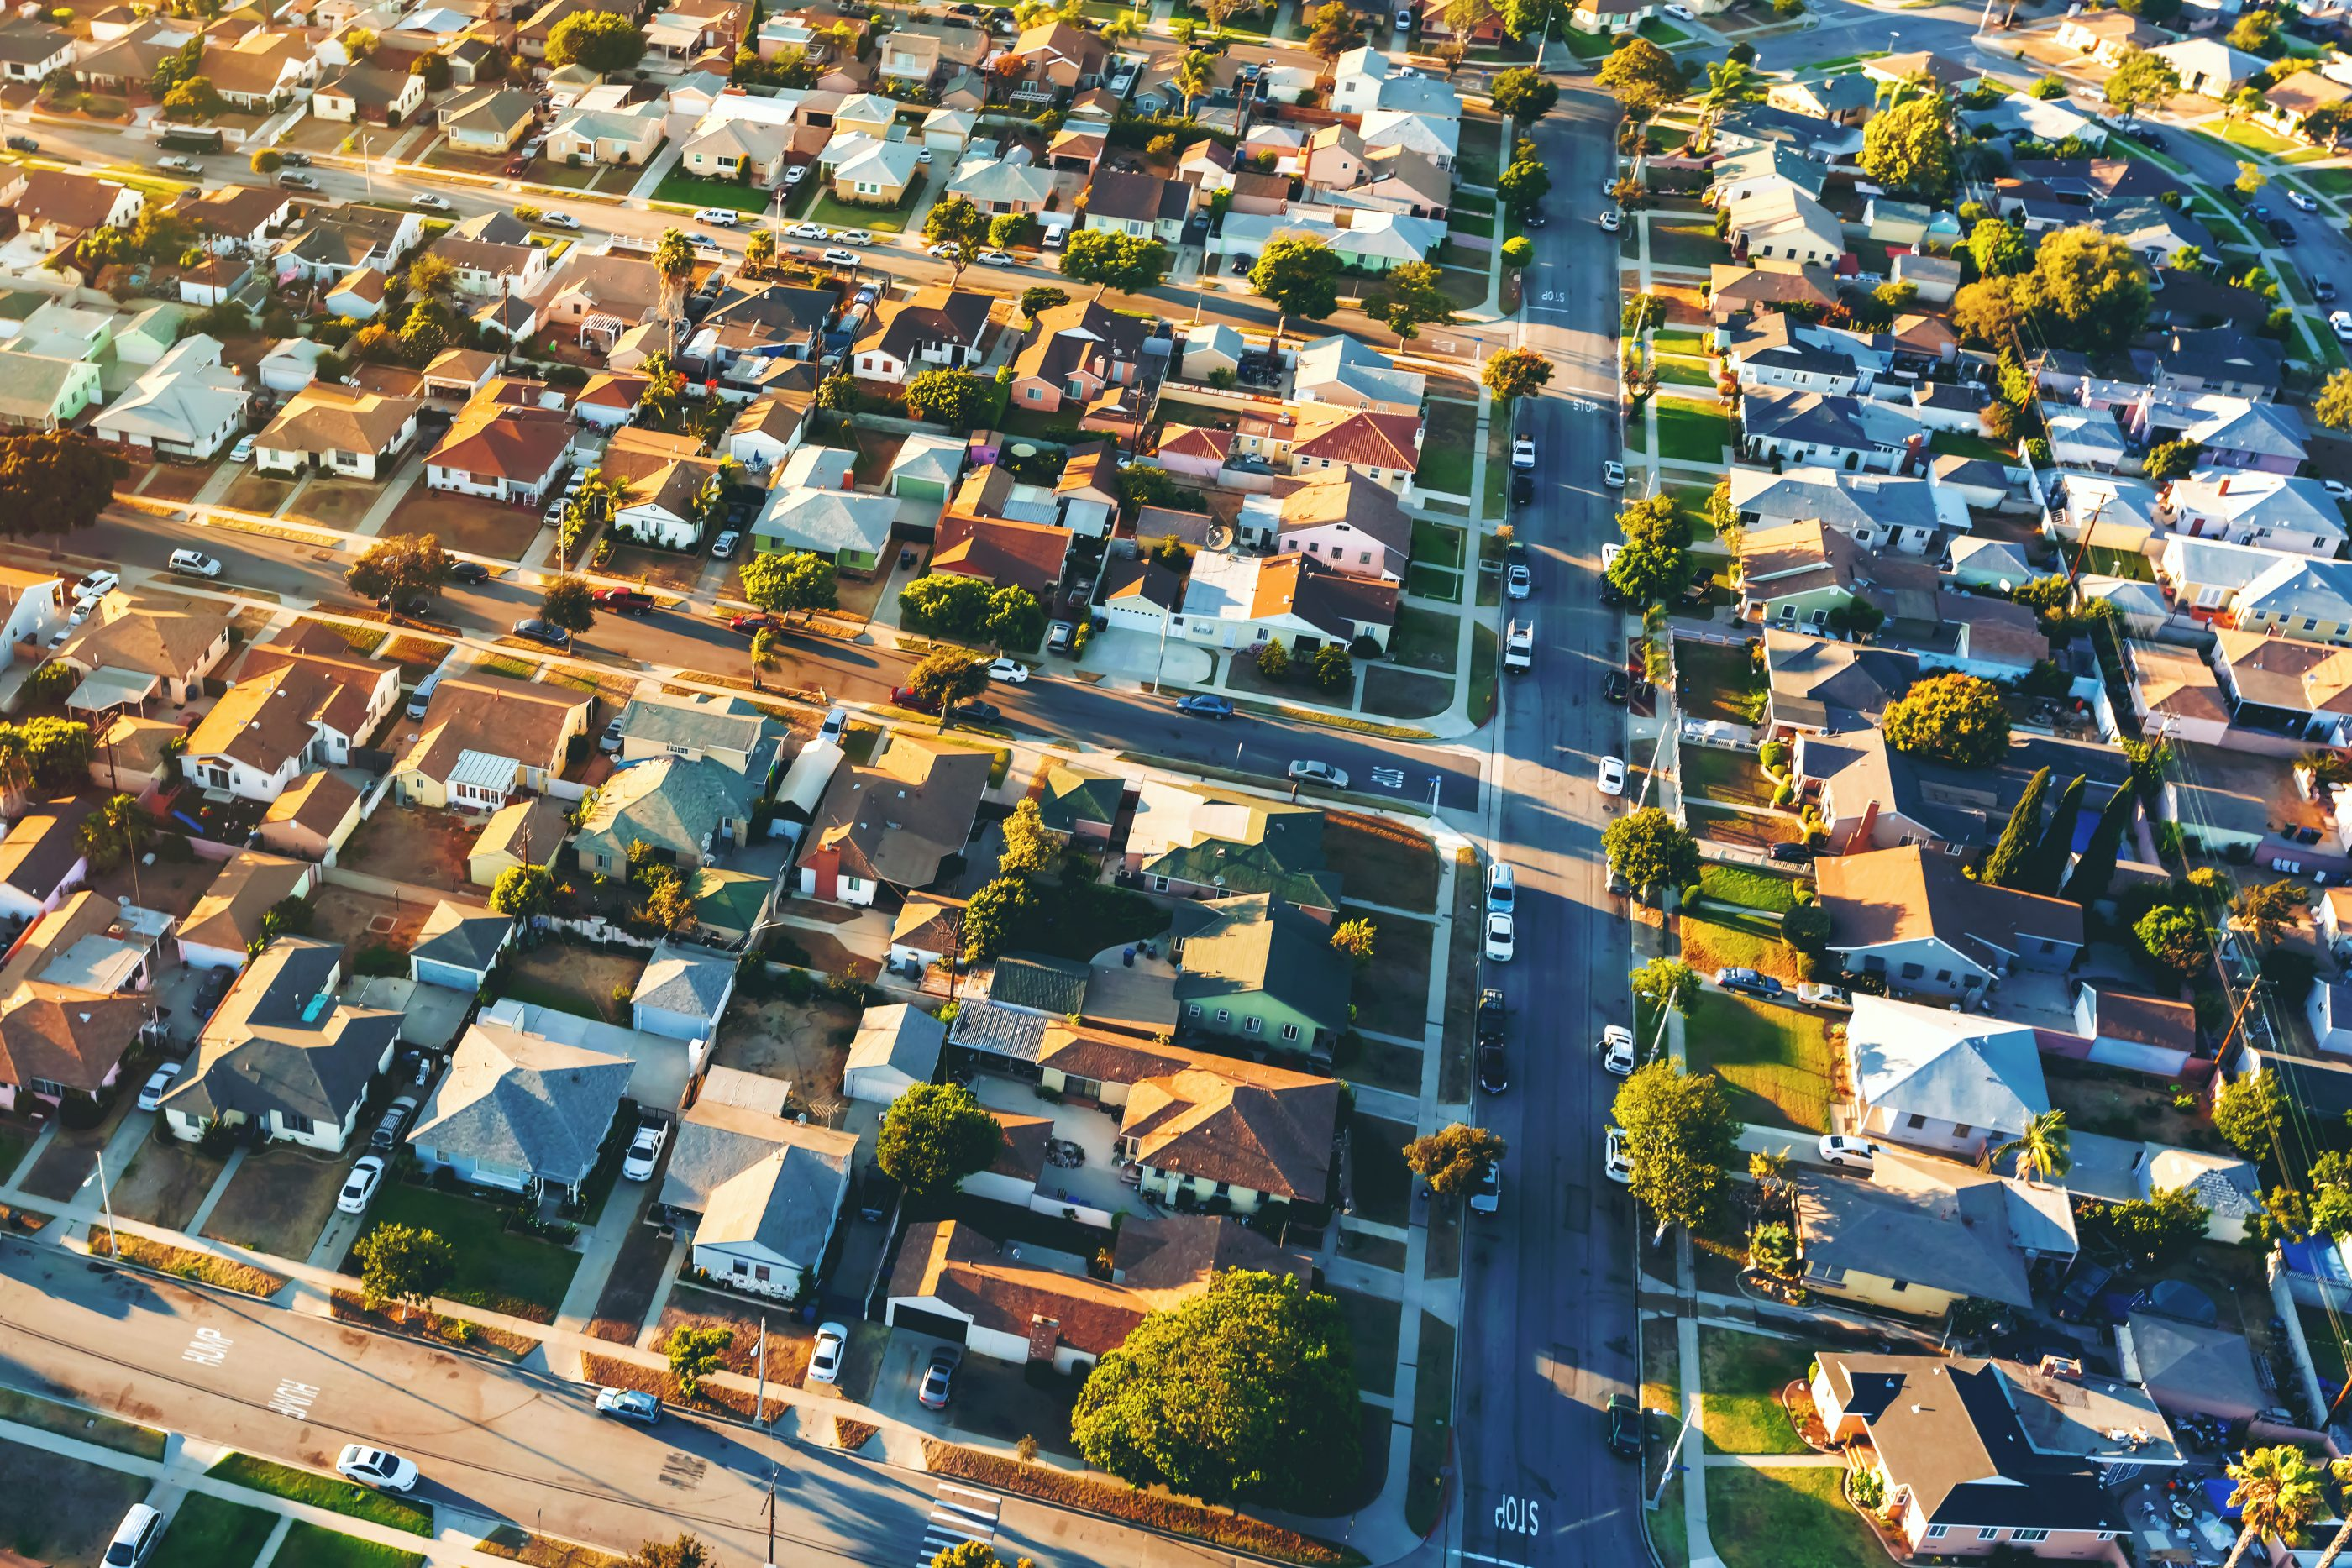 Aerial view of of a residential neighborhood in Los Angeles, Calif.